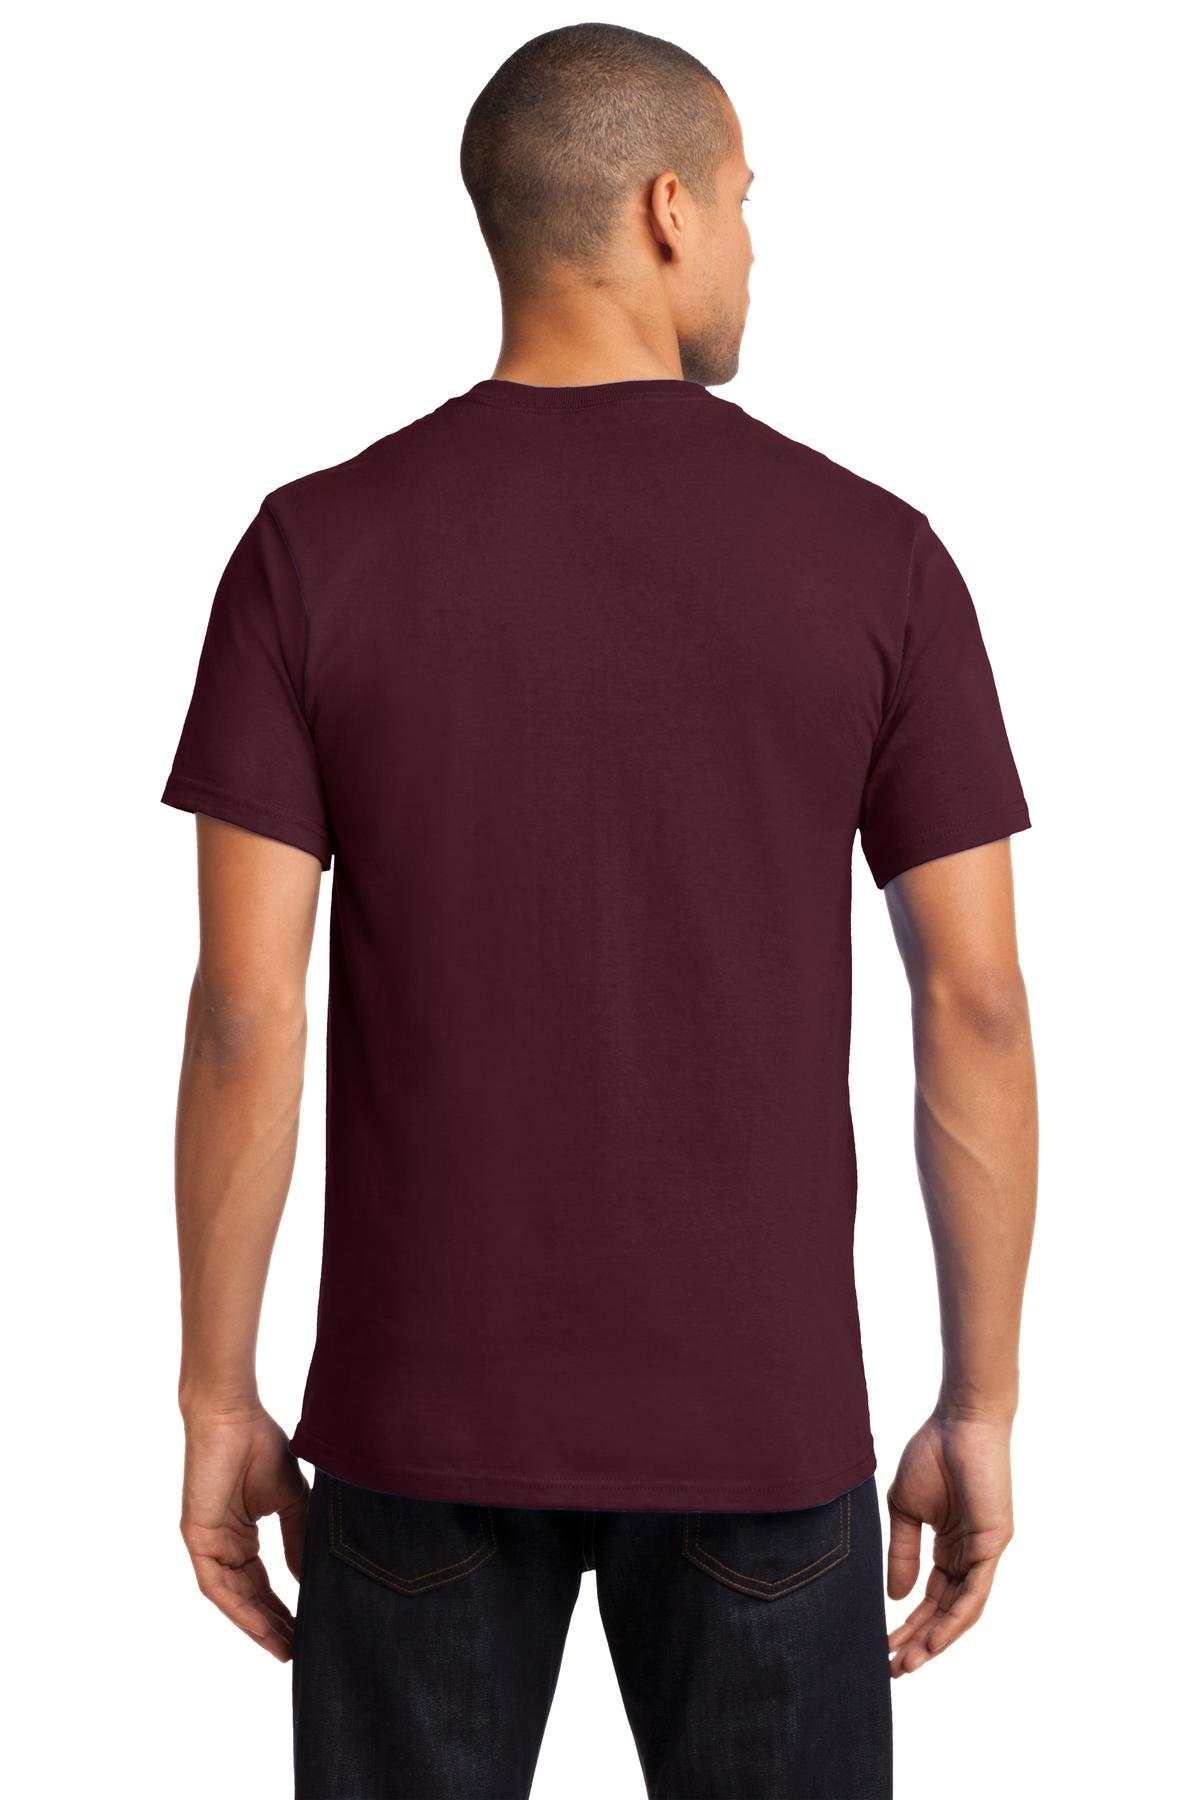 Port-amp-Company-Tall-Essential-TShirt-with-Pocket-PC61PT-Size-LT-4XLT thumbnail 8